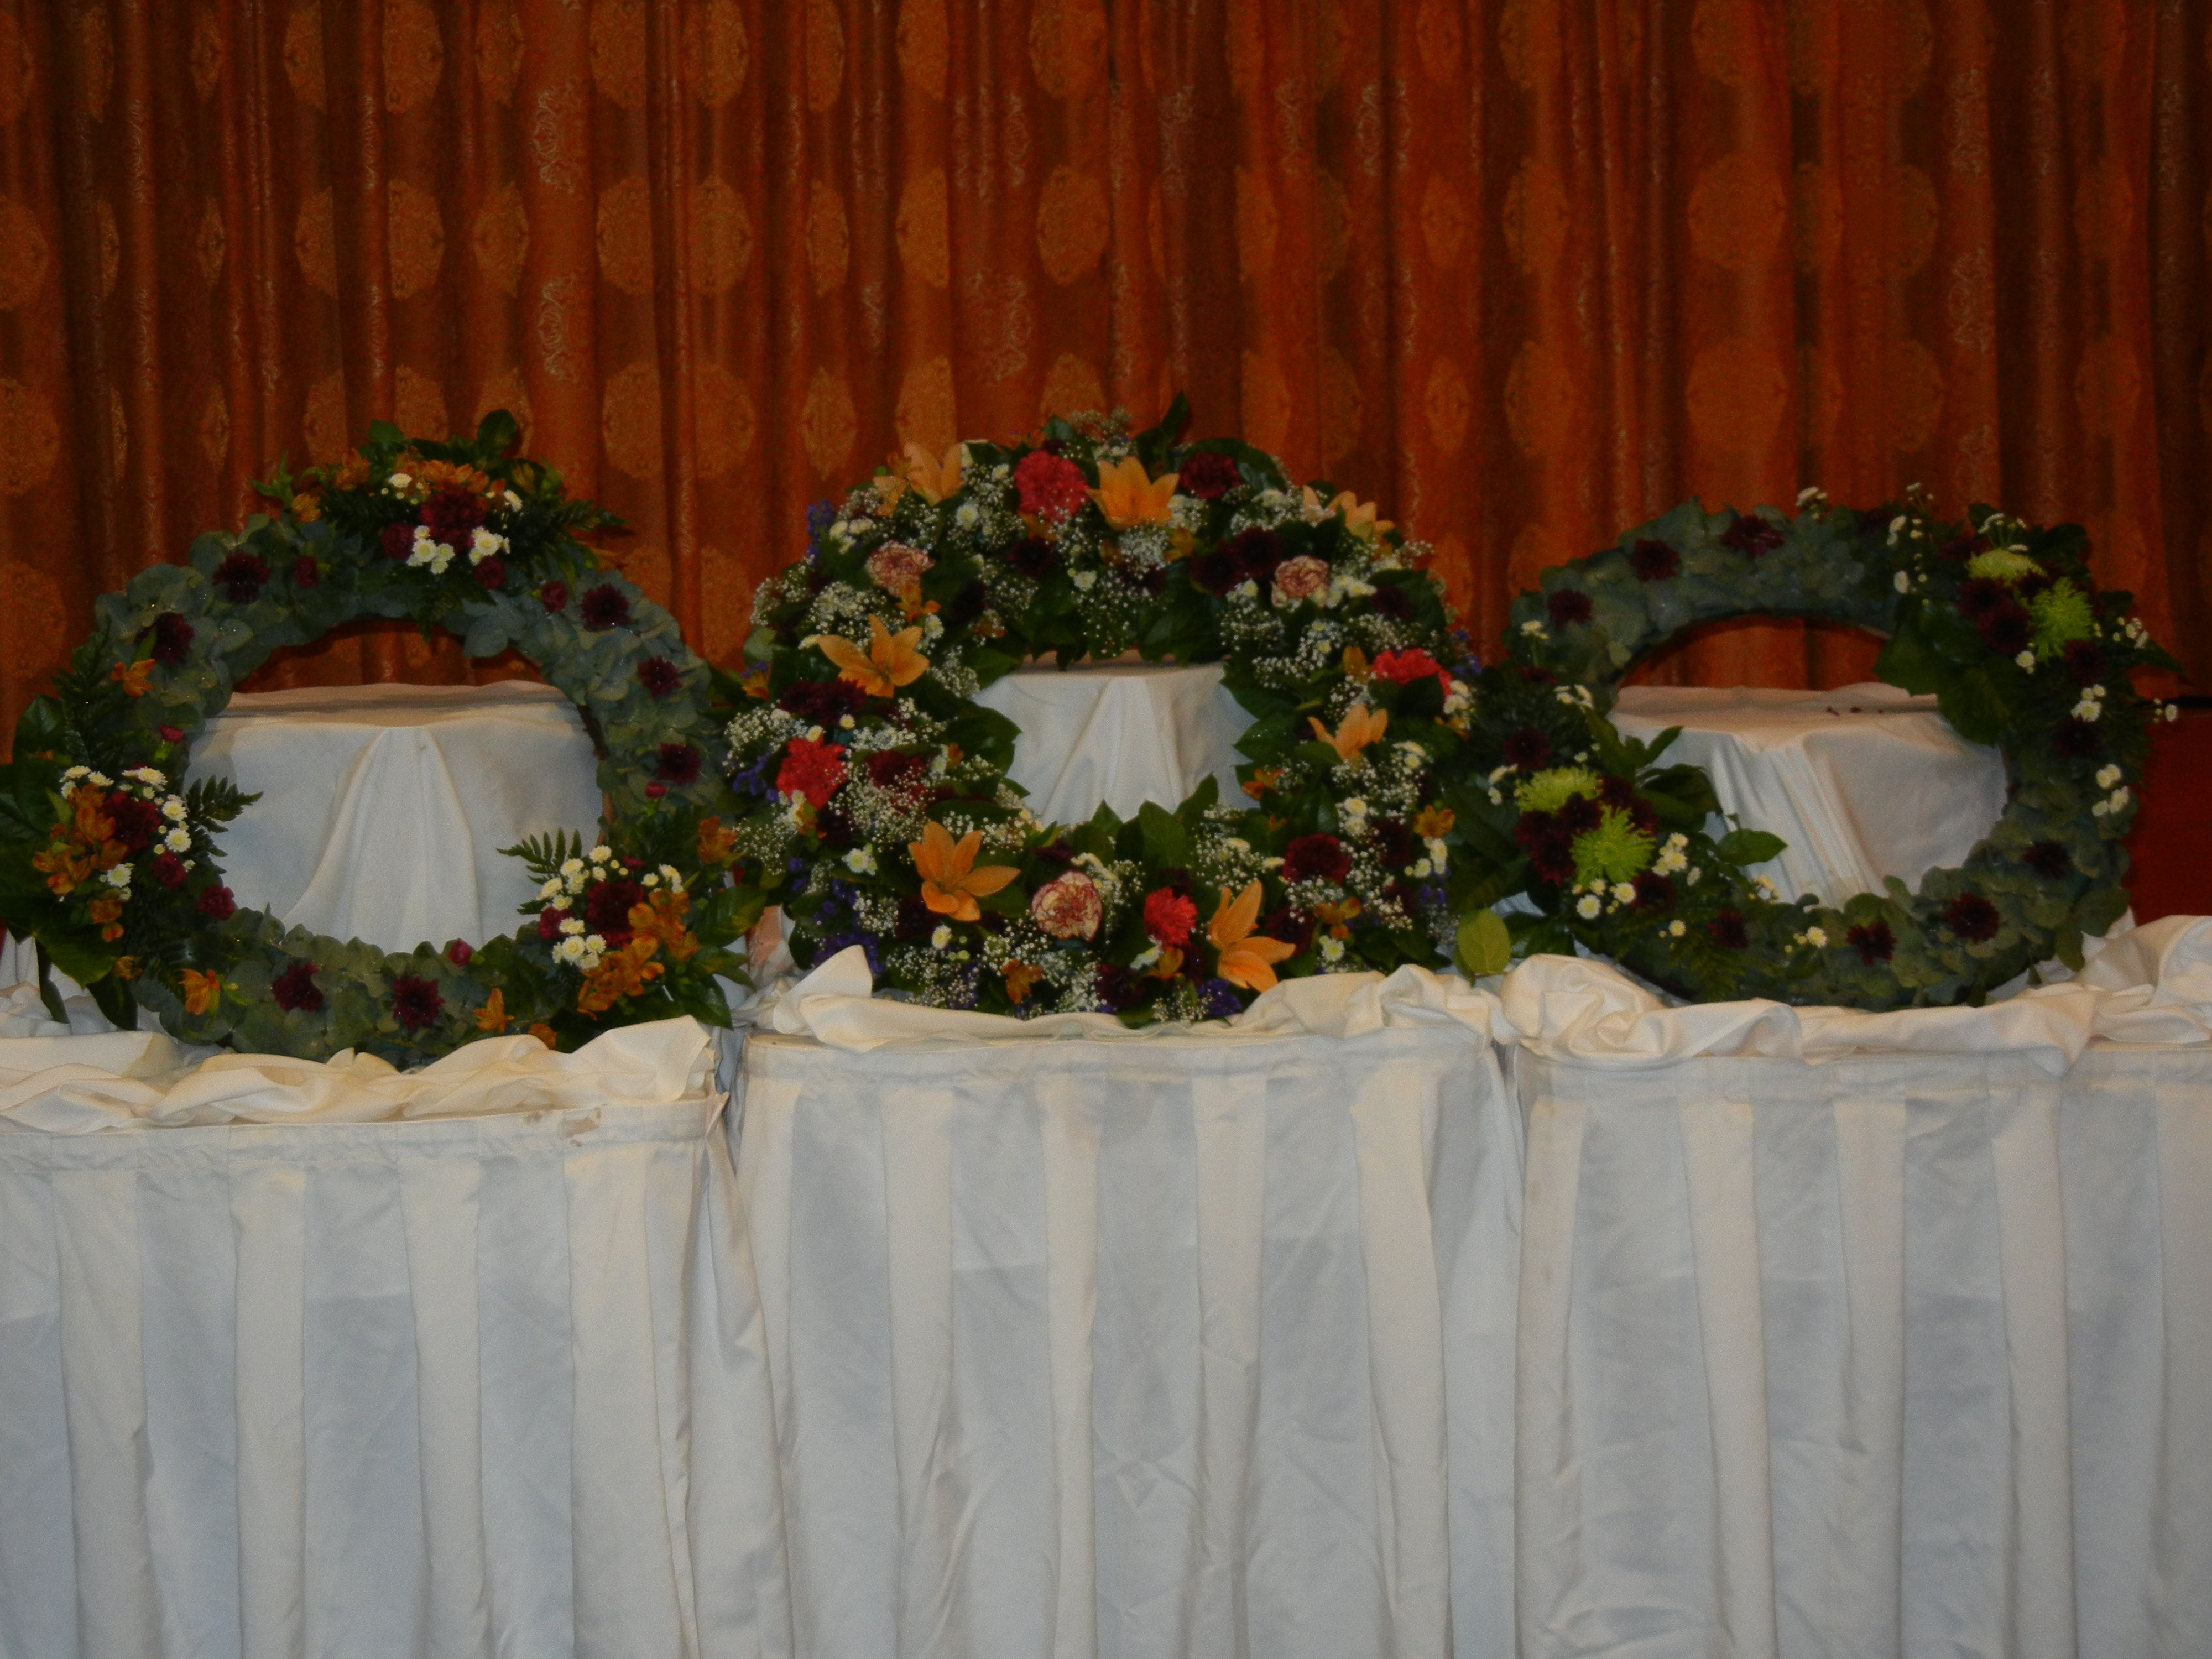 The Three Wreaths